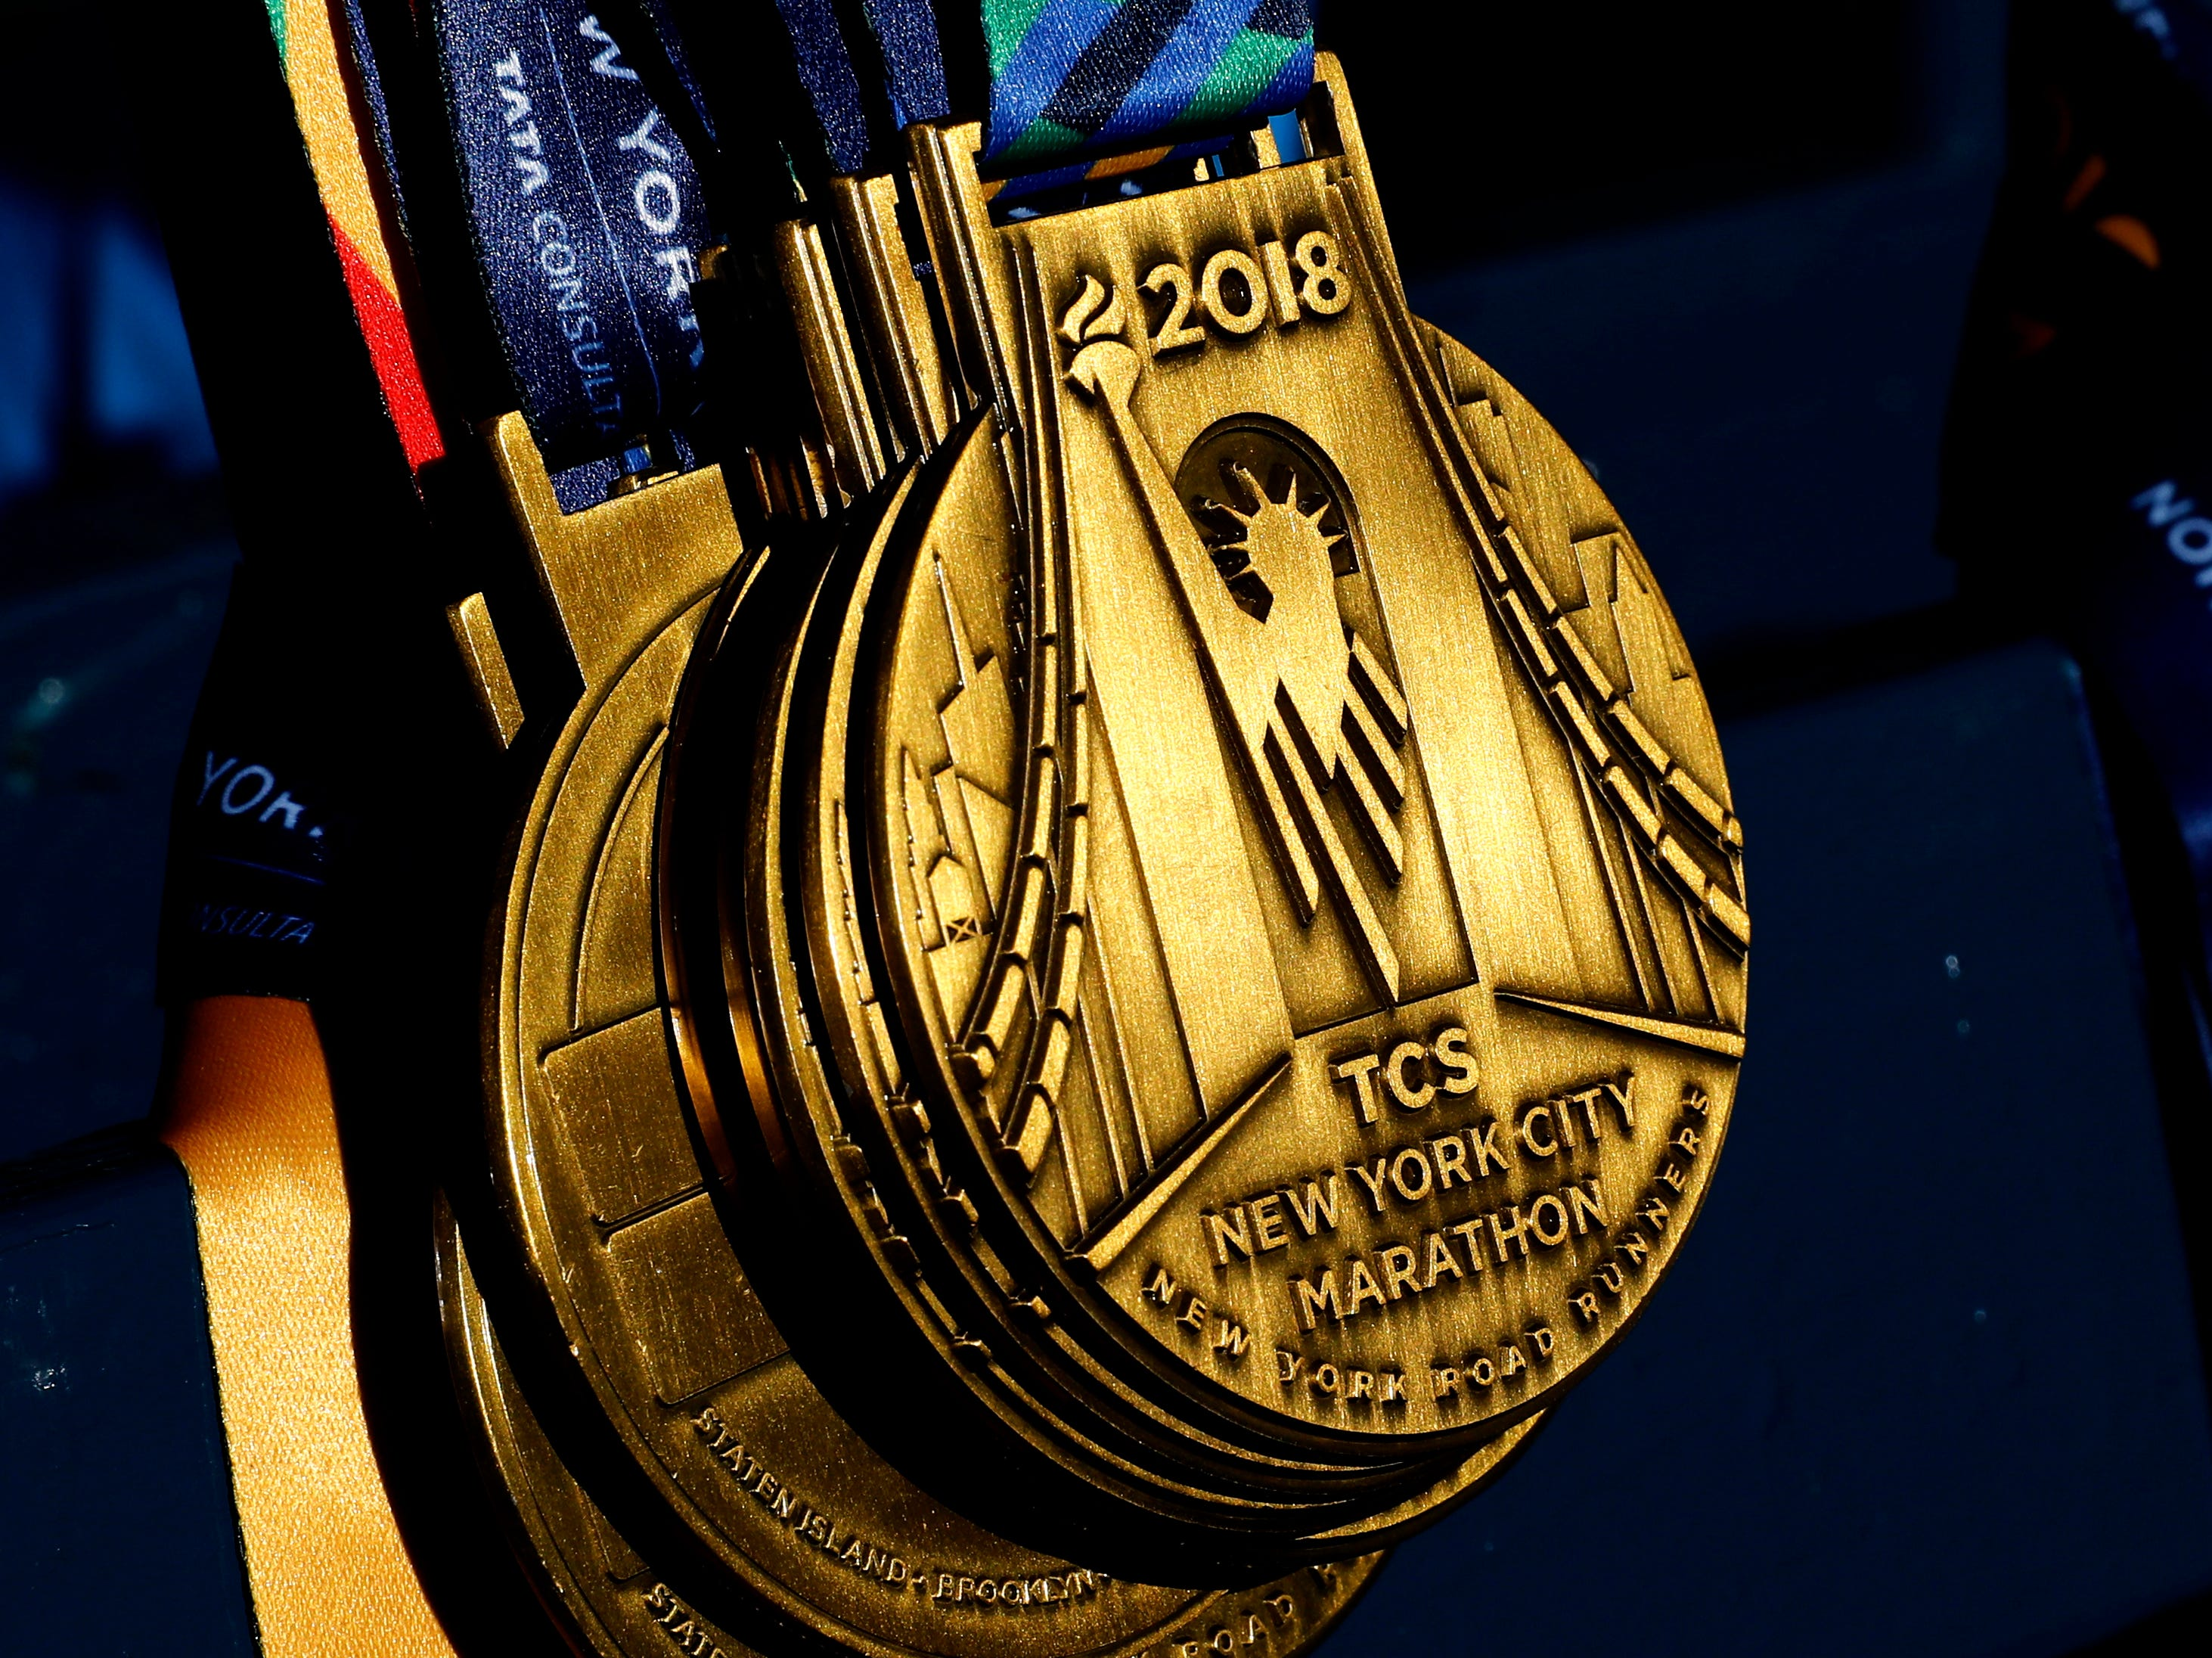 All runners finishing the TCS New York City Marathon will receive a participation medal being displayed before the start of the race in Central Park in New York.